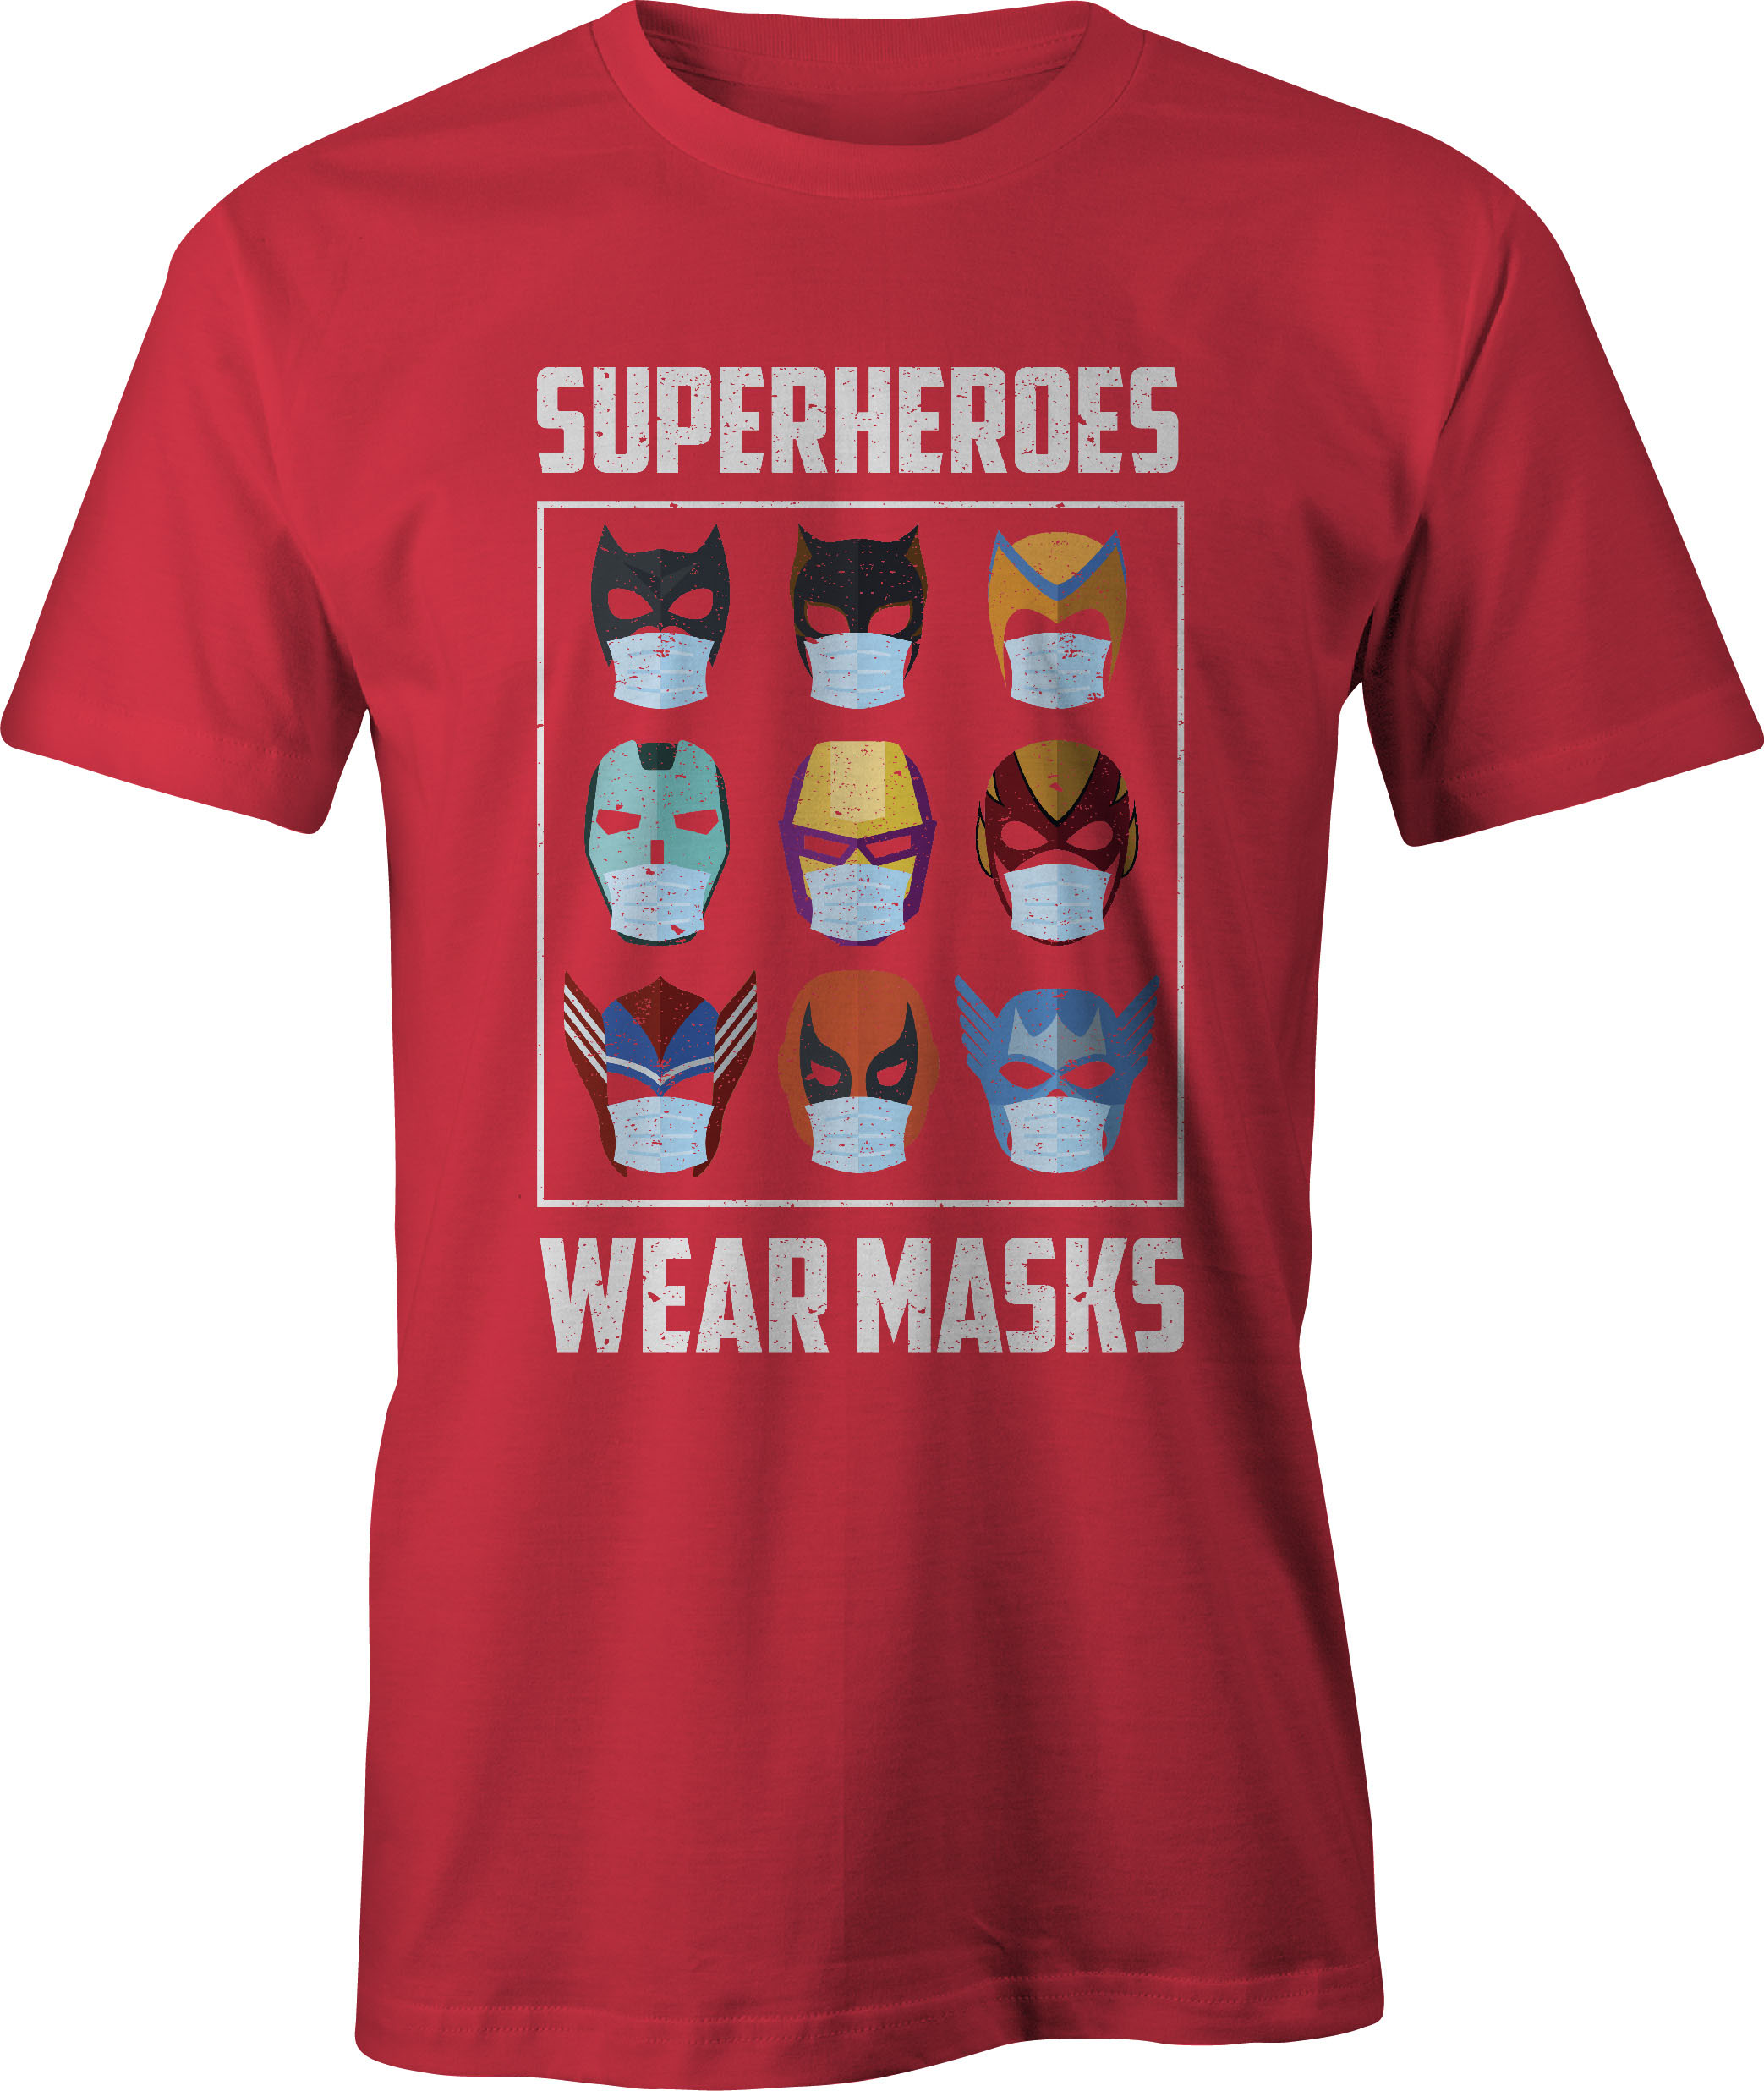 Superheroes Wear Masks T-Shirt in Red